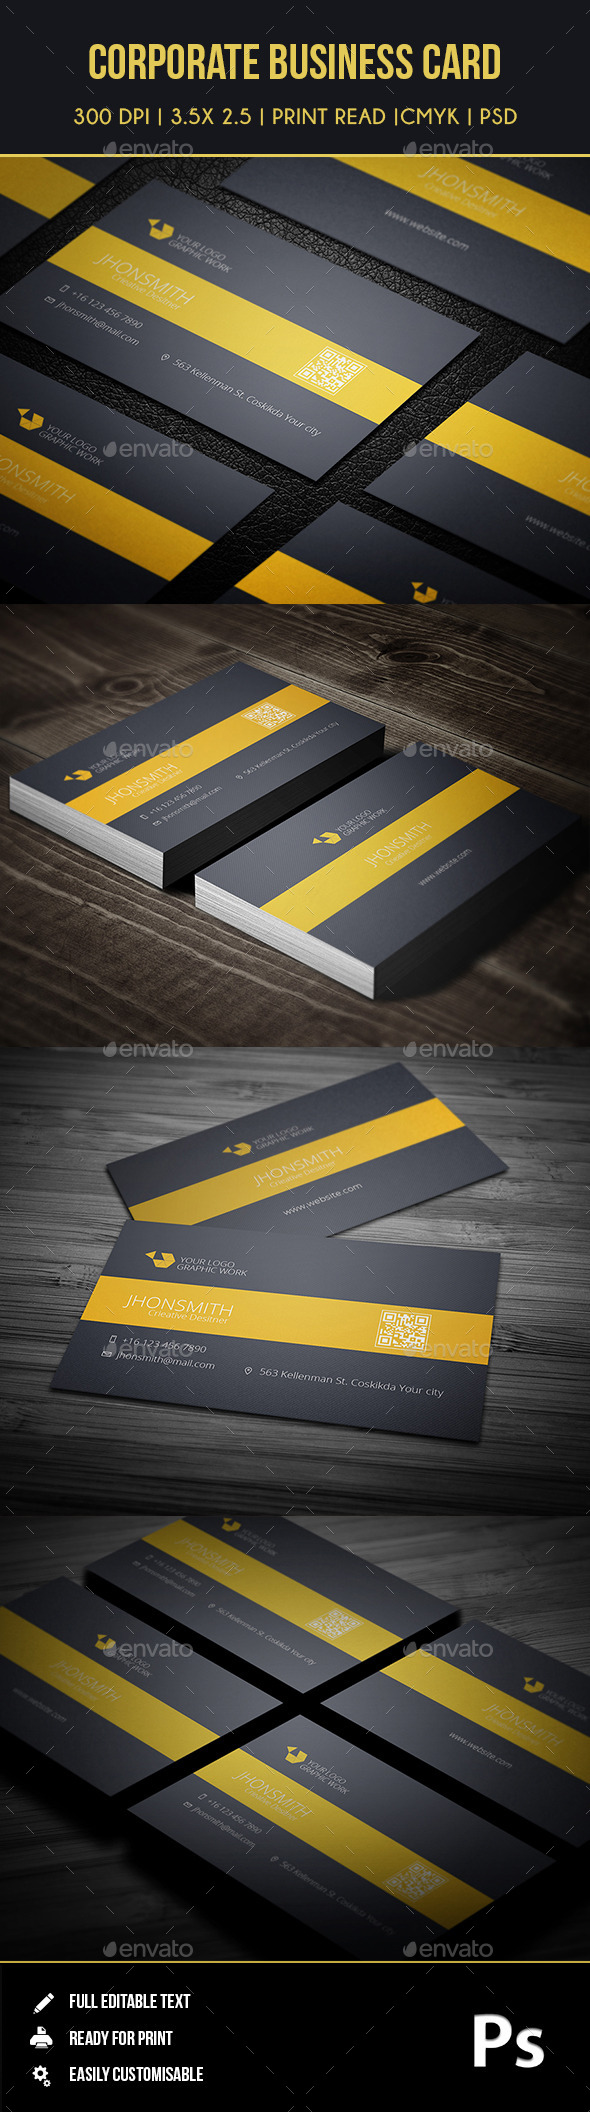 Corporate Business Card 01 - Business Cards Print Templates